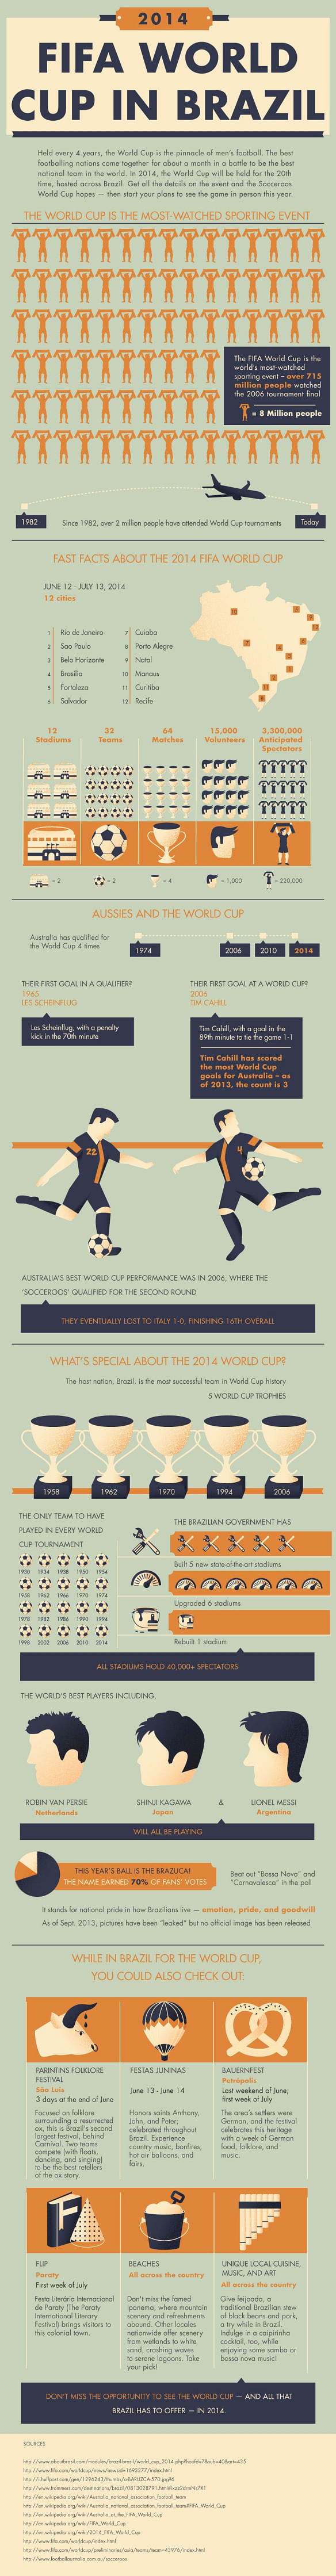 INFOGRAPHIC: 2014 FIFA World Cup in Brazil